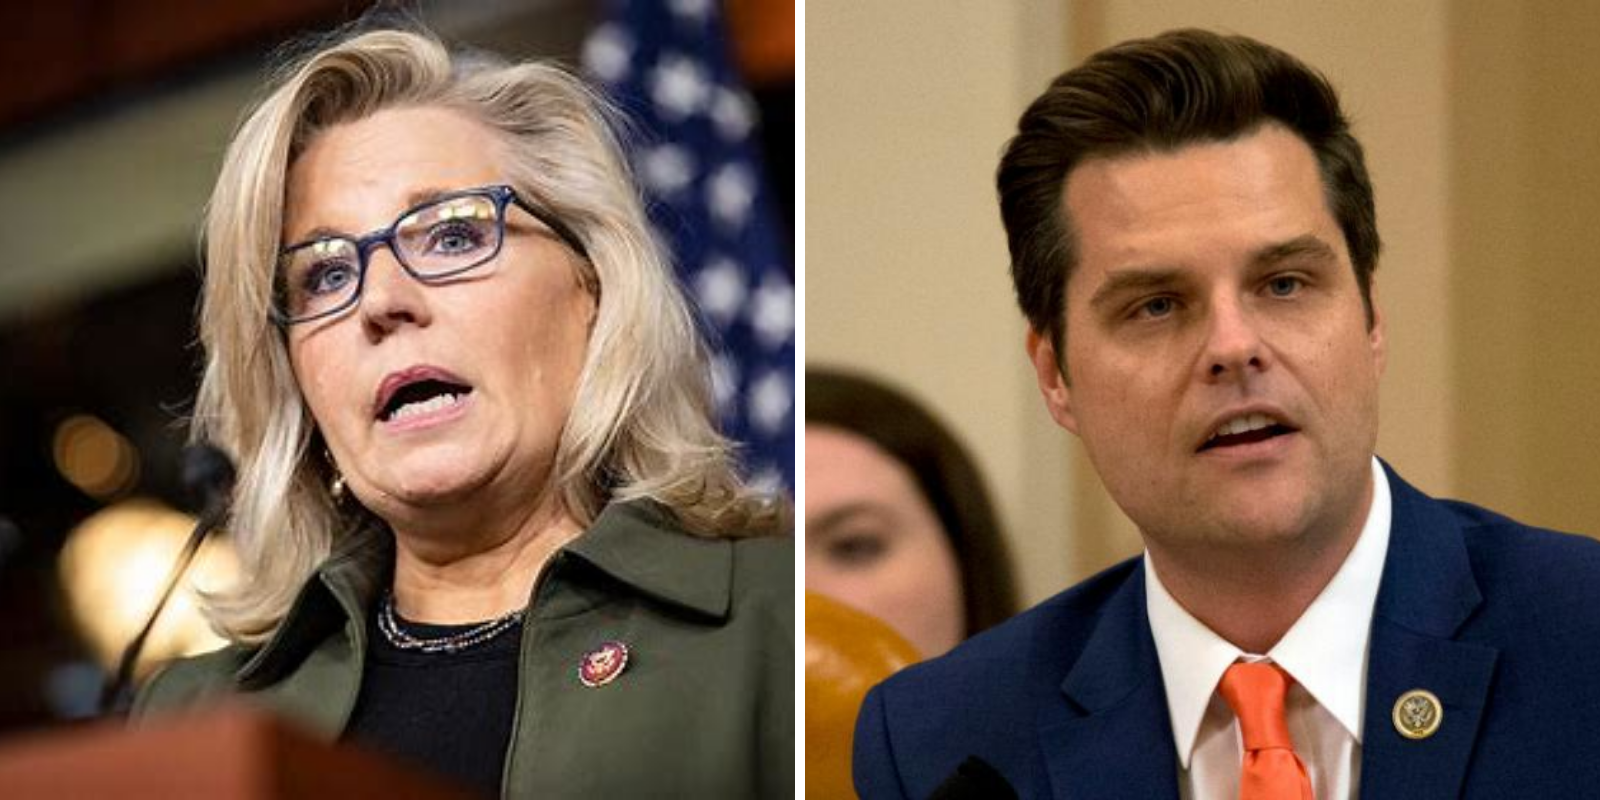 BREAKING: Liz Cheney voted out of leadership role by House GOP